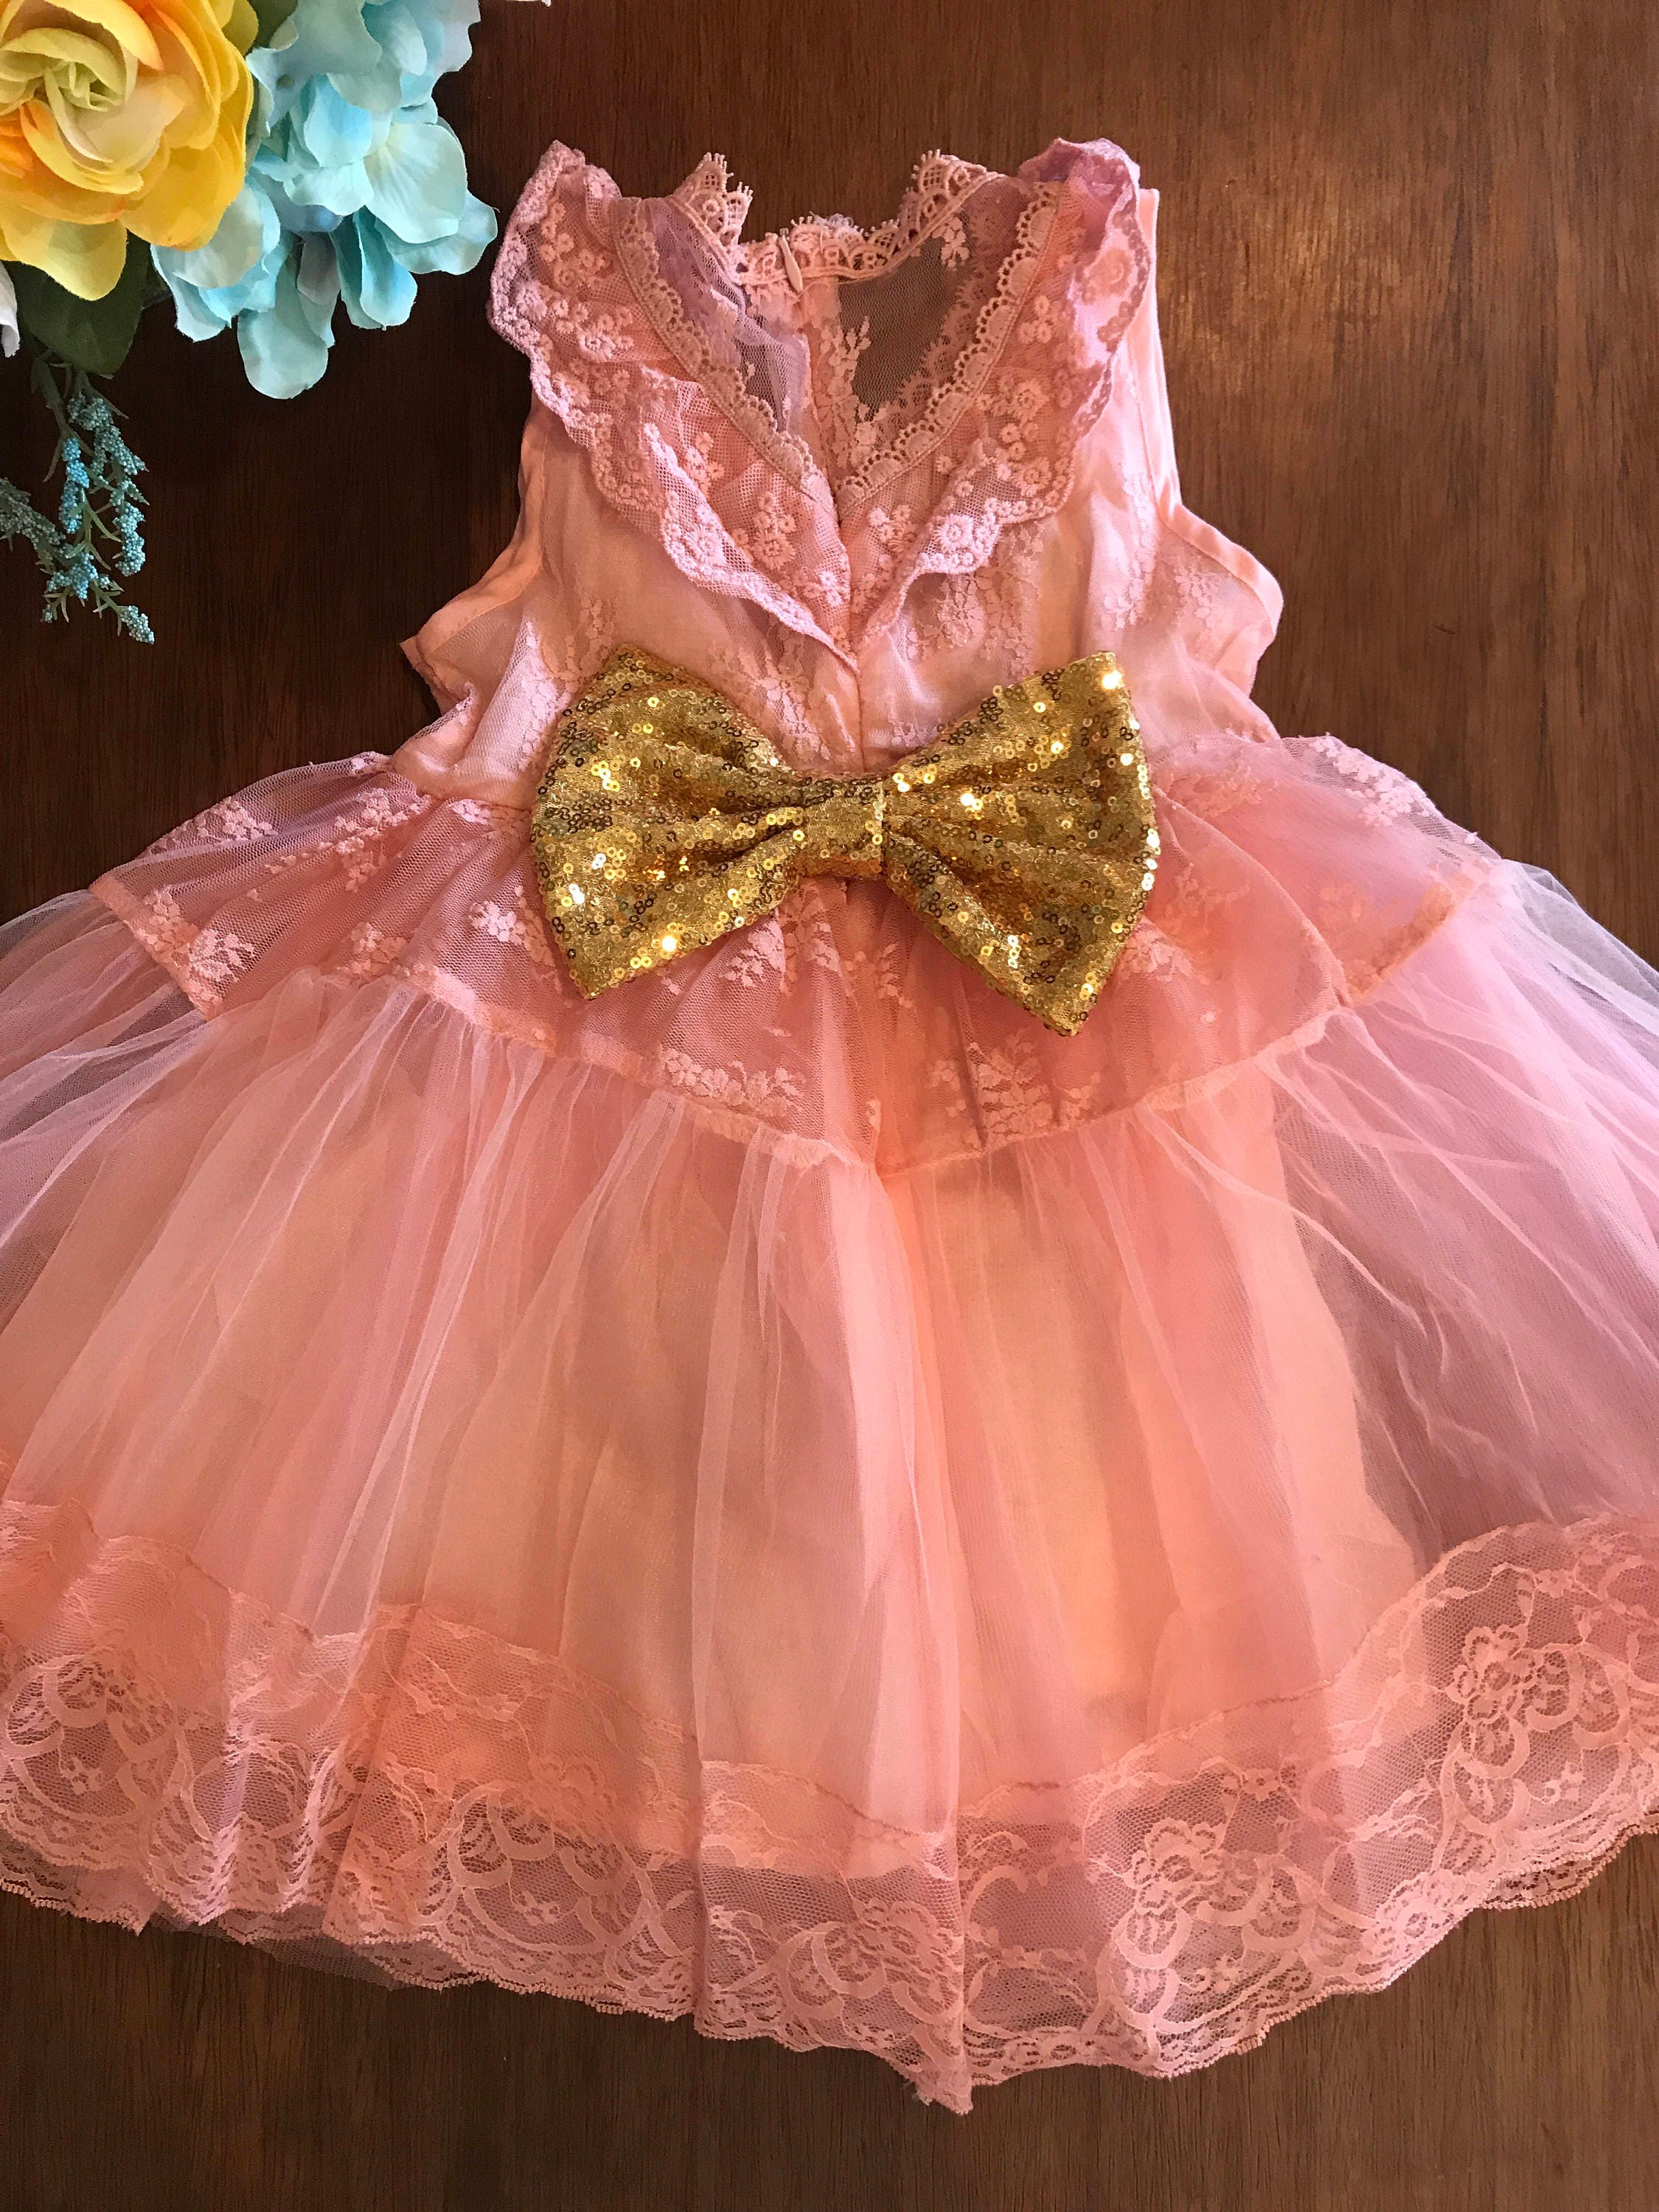 Posh Sweet Pink Lace And Girls Dress Flower Girl First Birthday